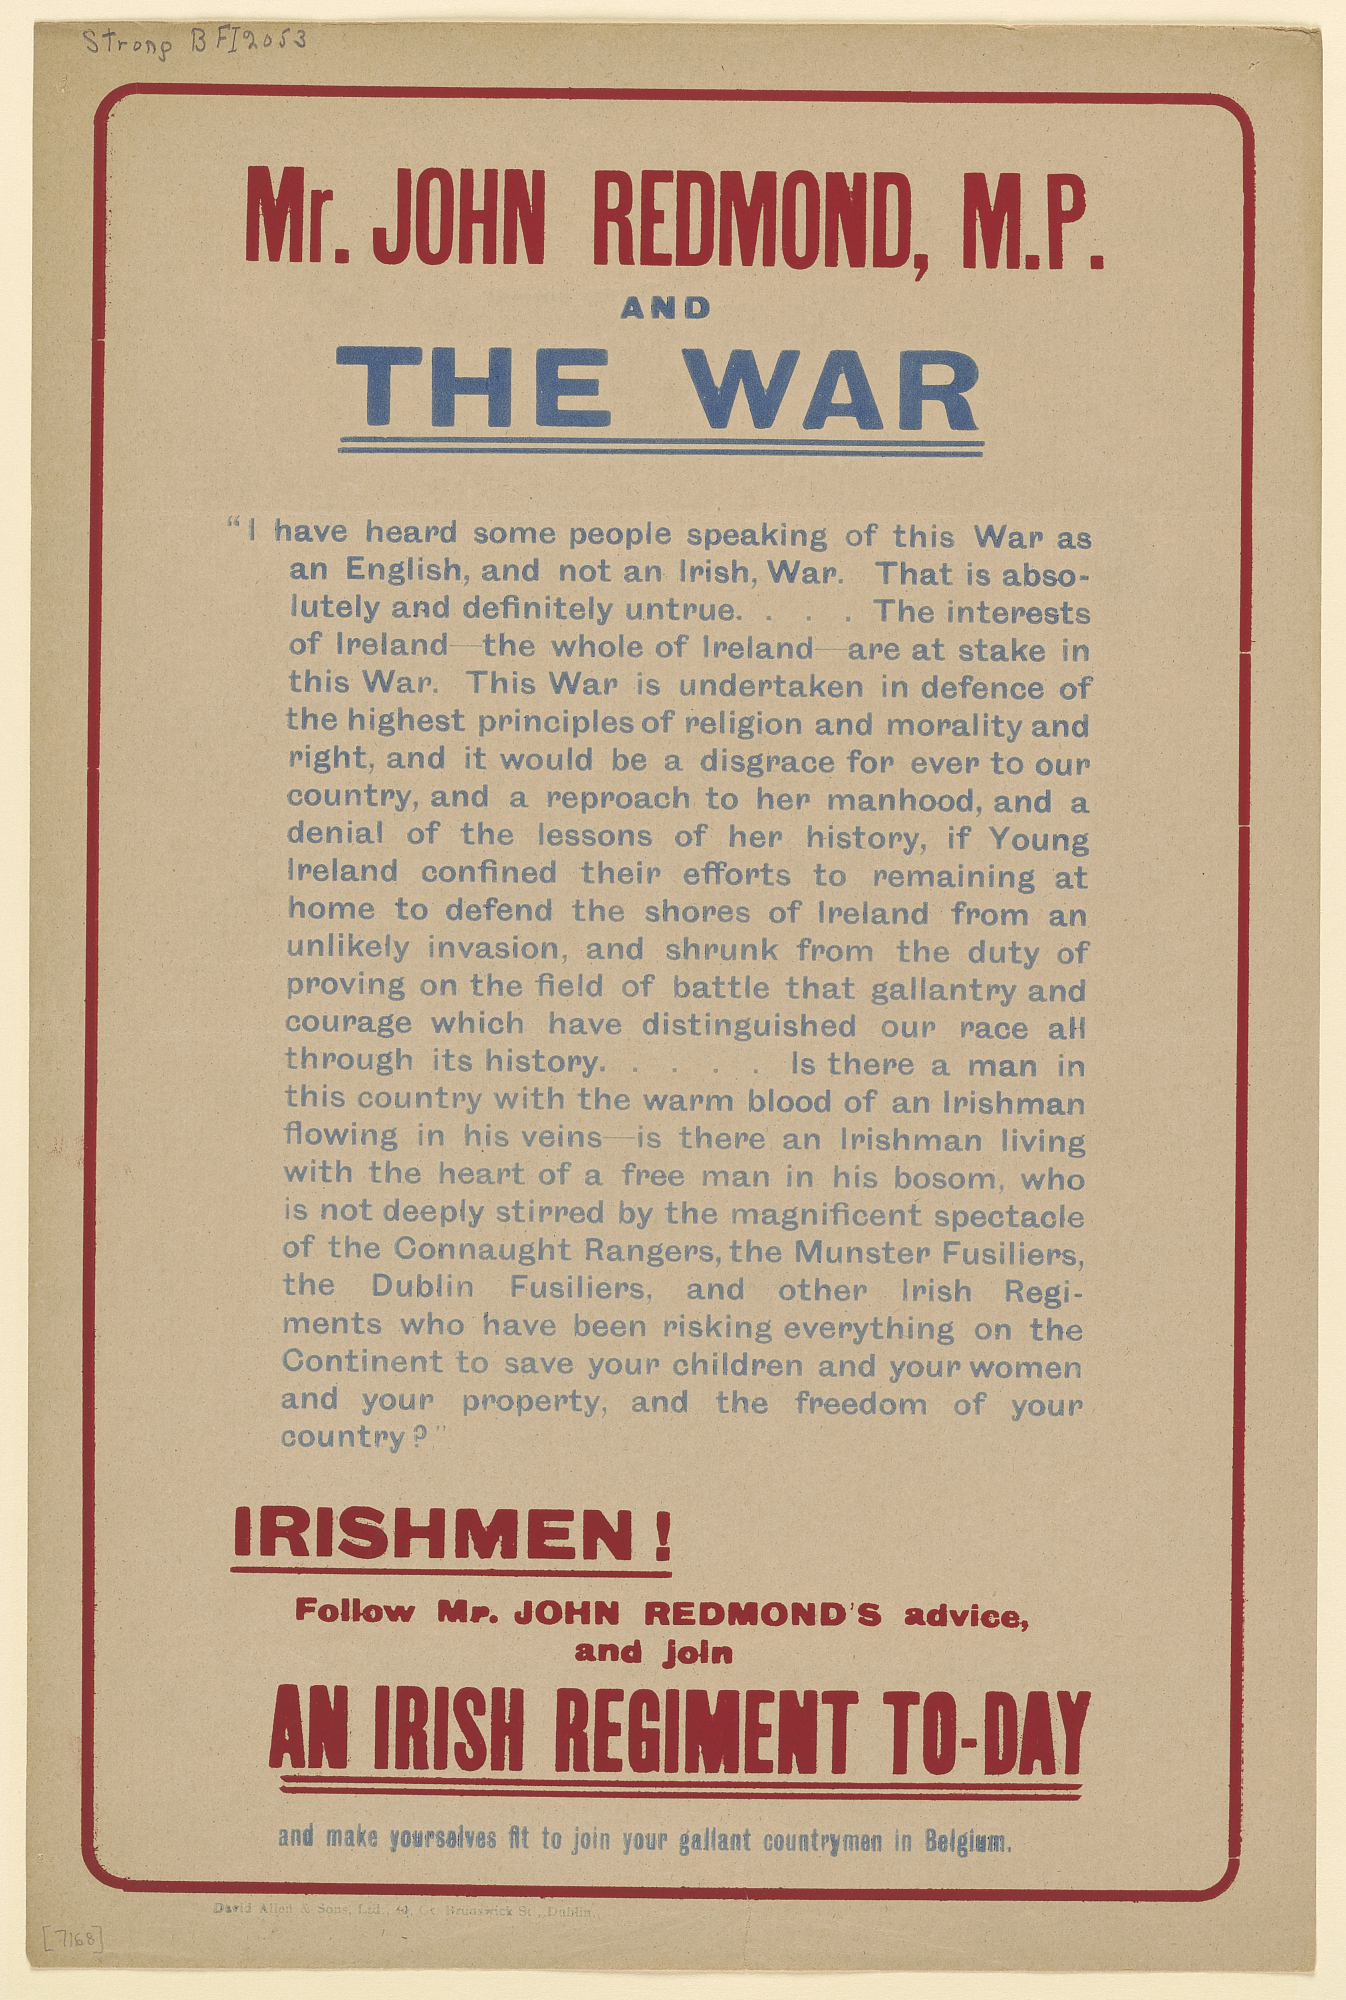 Mr. John Redmond, M.P. And the War ... Irishmen! Follow Mr. John Redmond's Advice and Join an Irish Regiment To-Day...